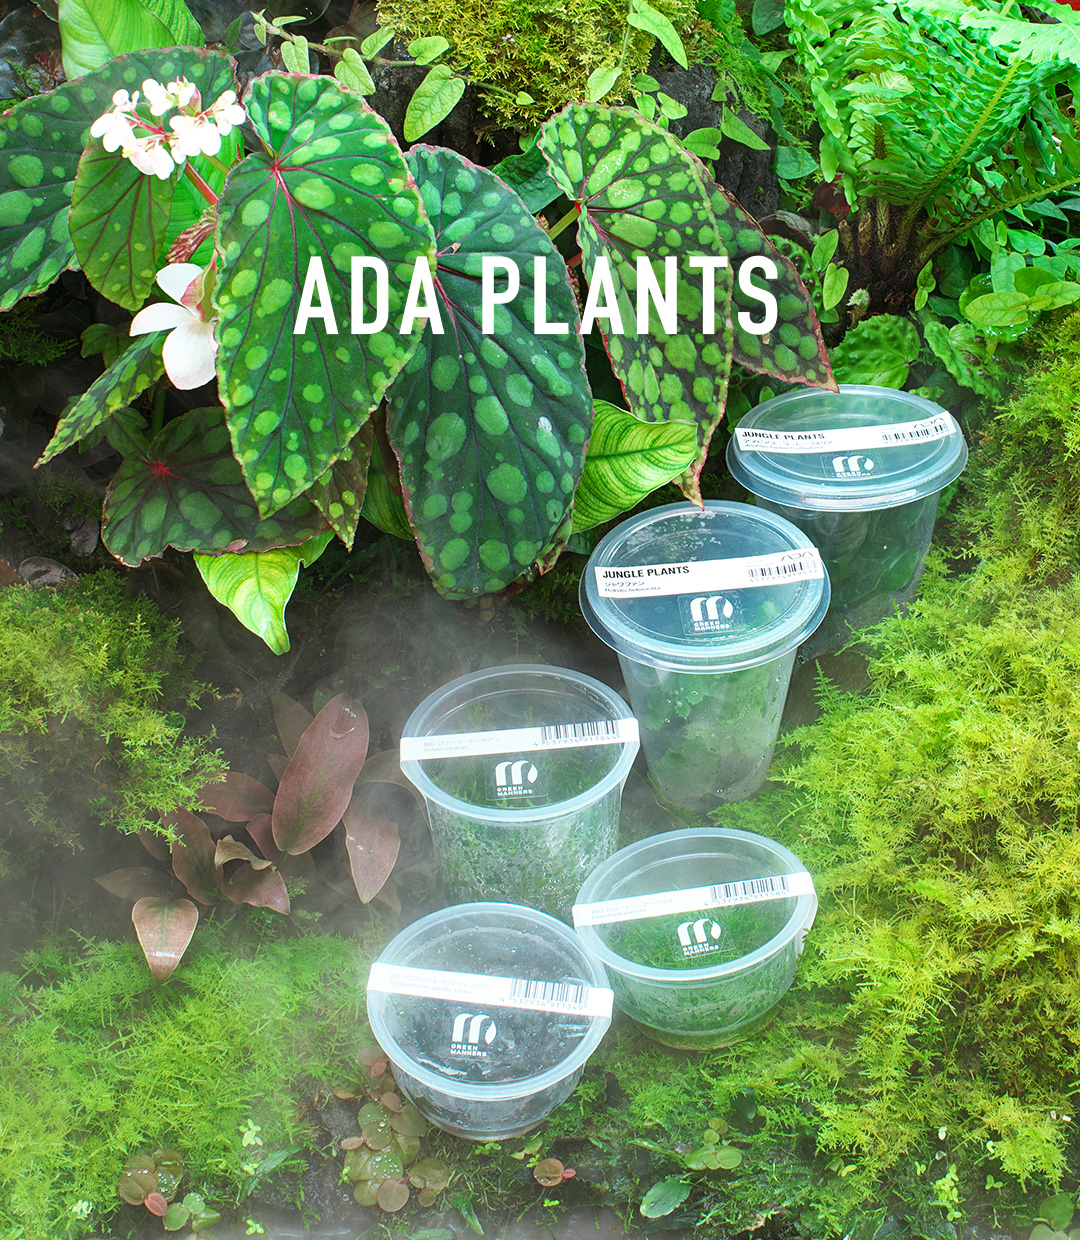 ADA PLANTS 'As If Plants Evolve, the Style of ADA's Living Products Becomes Diverse'